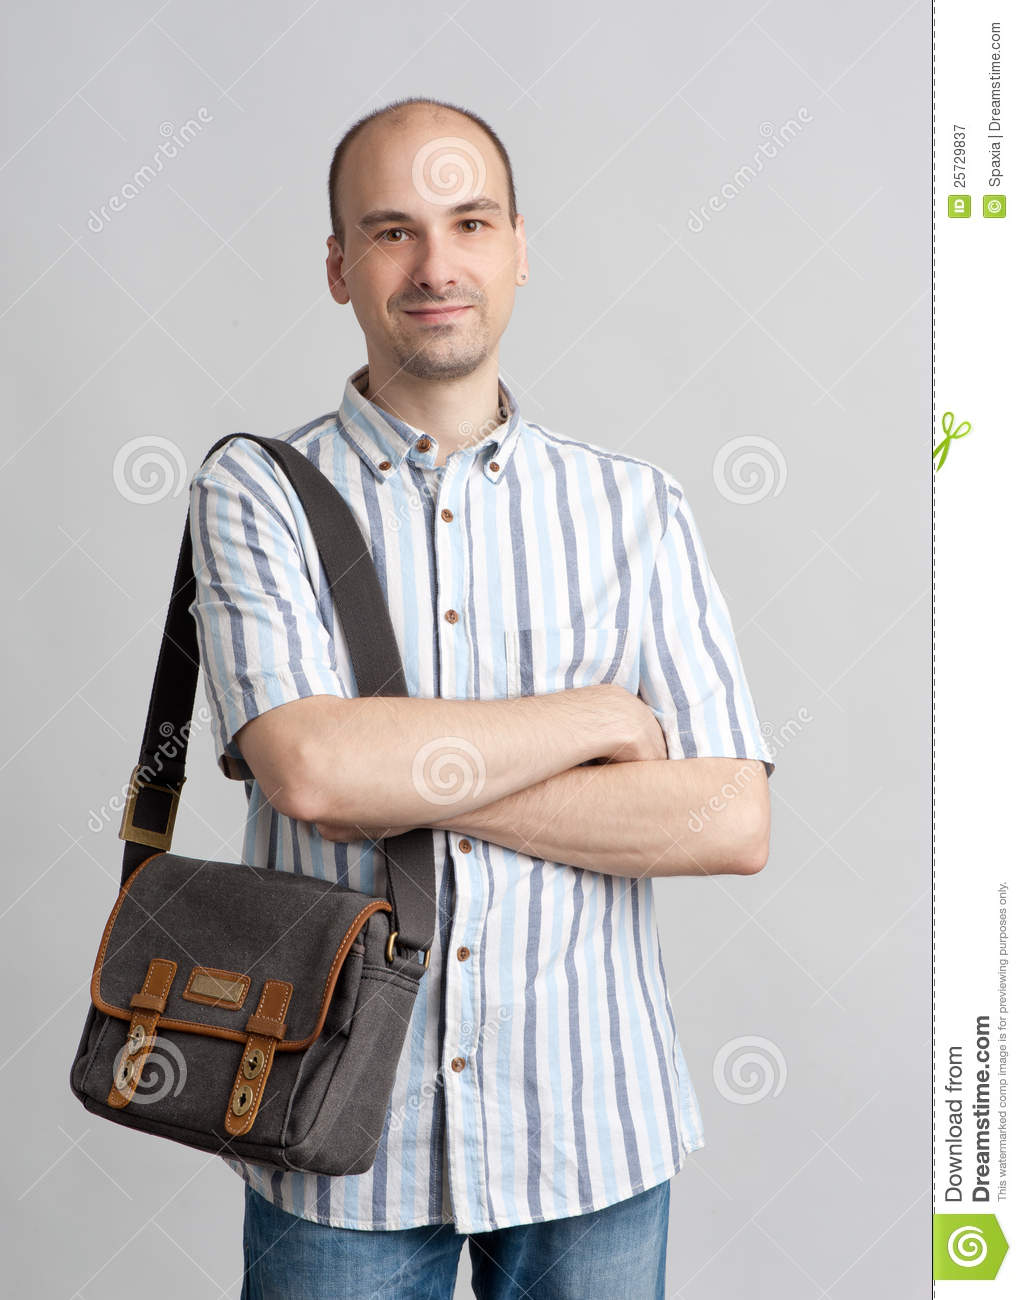 Smiling Man With Bag Royalty Free Stock Photography - Image: 25729837